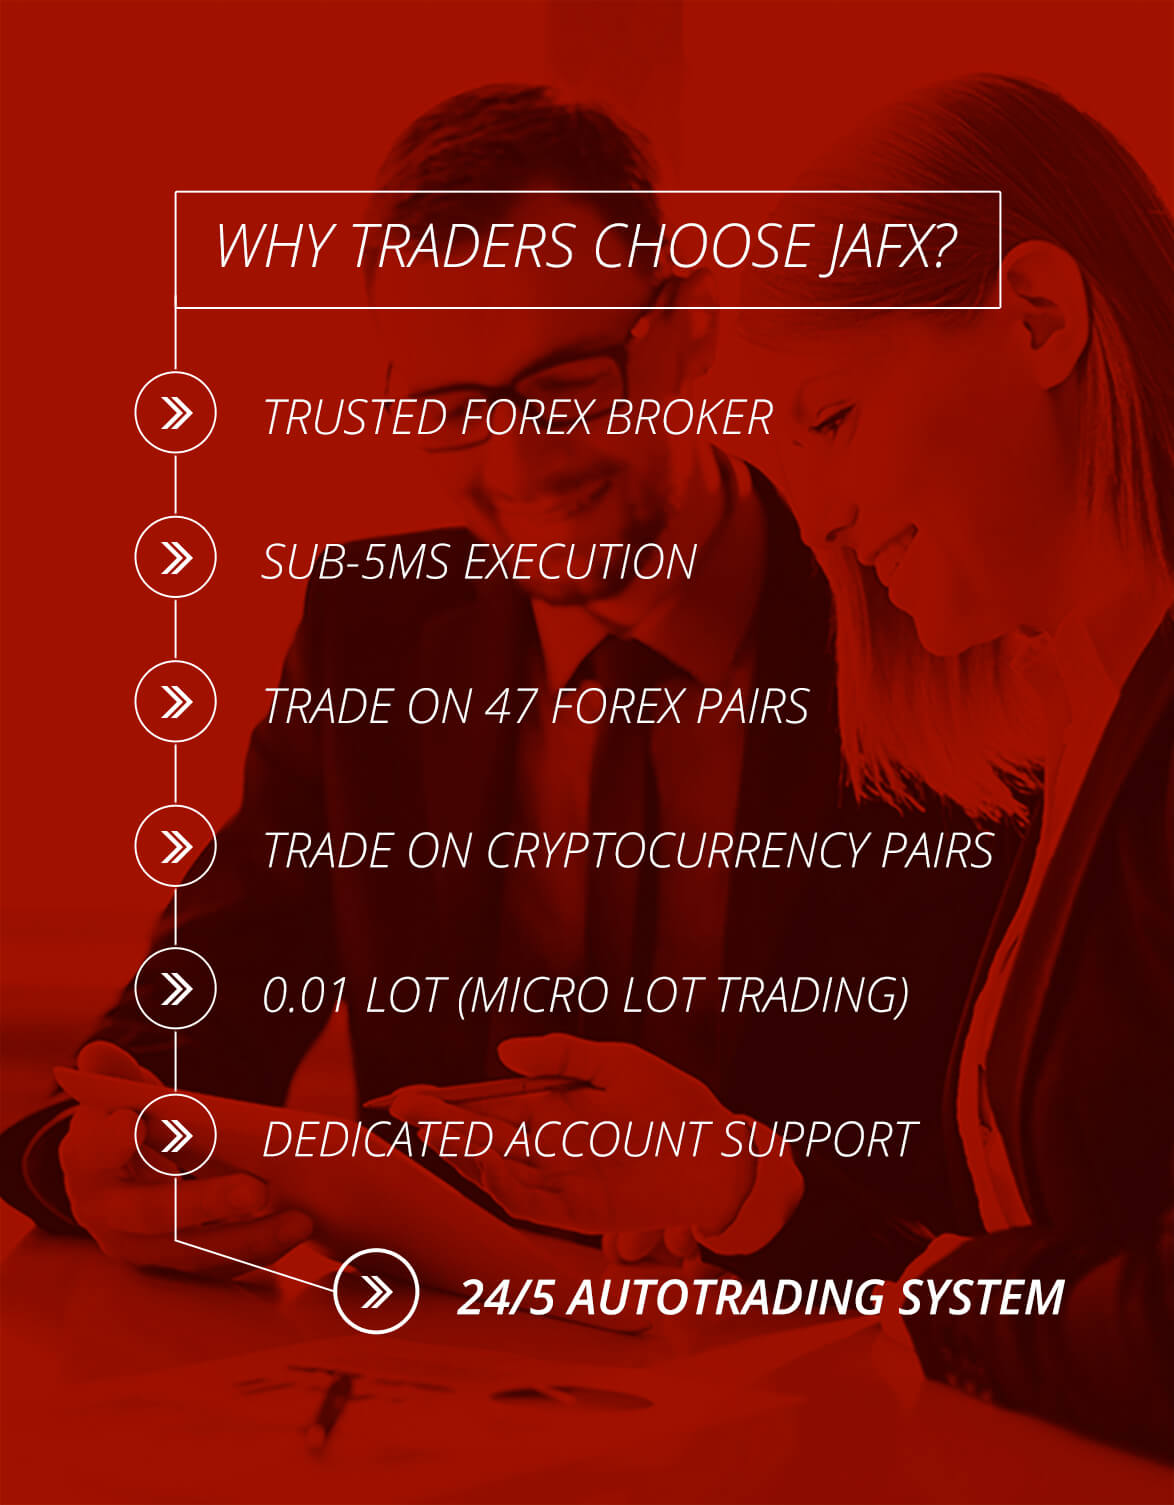 JAFX - Trade With A Reputable Forex Broker